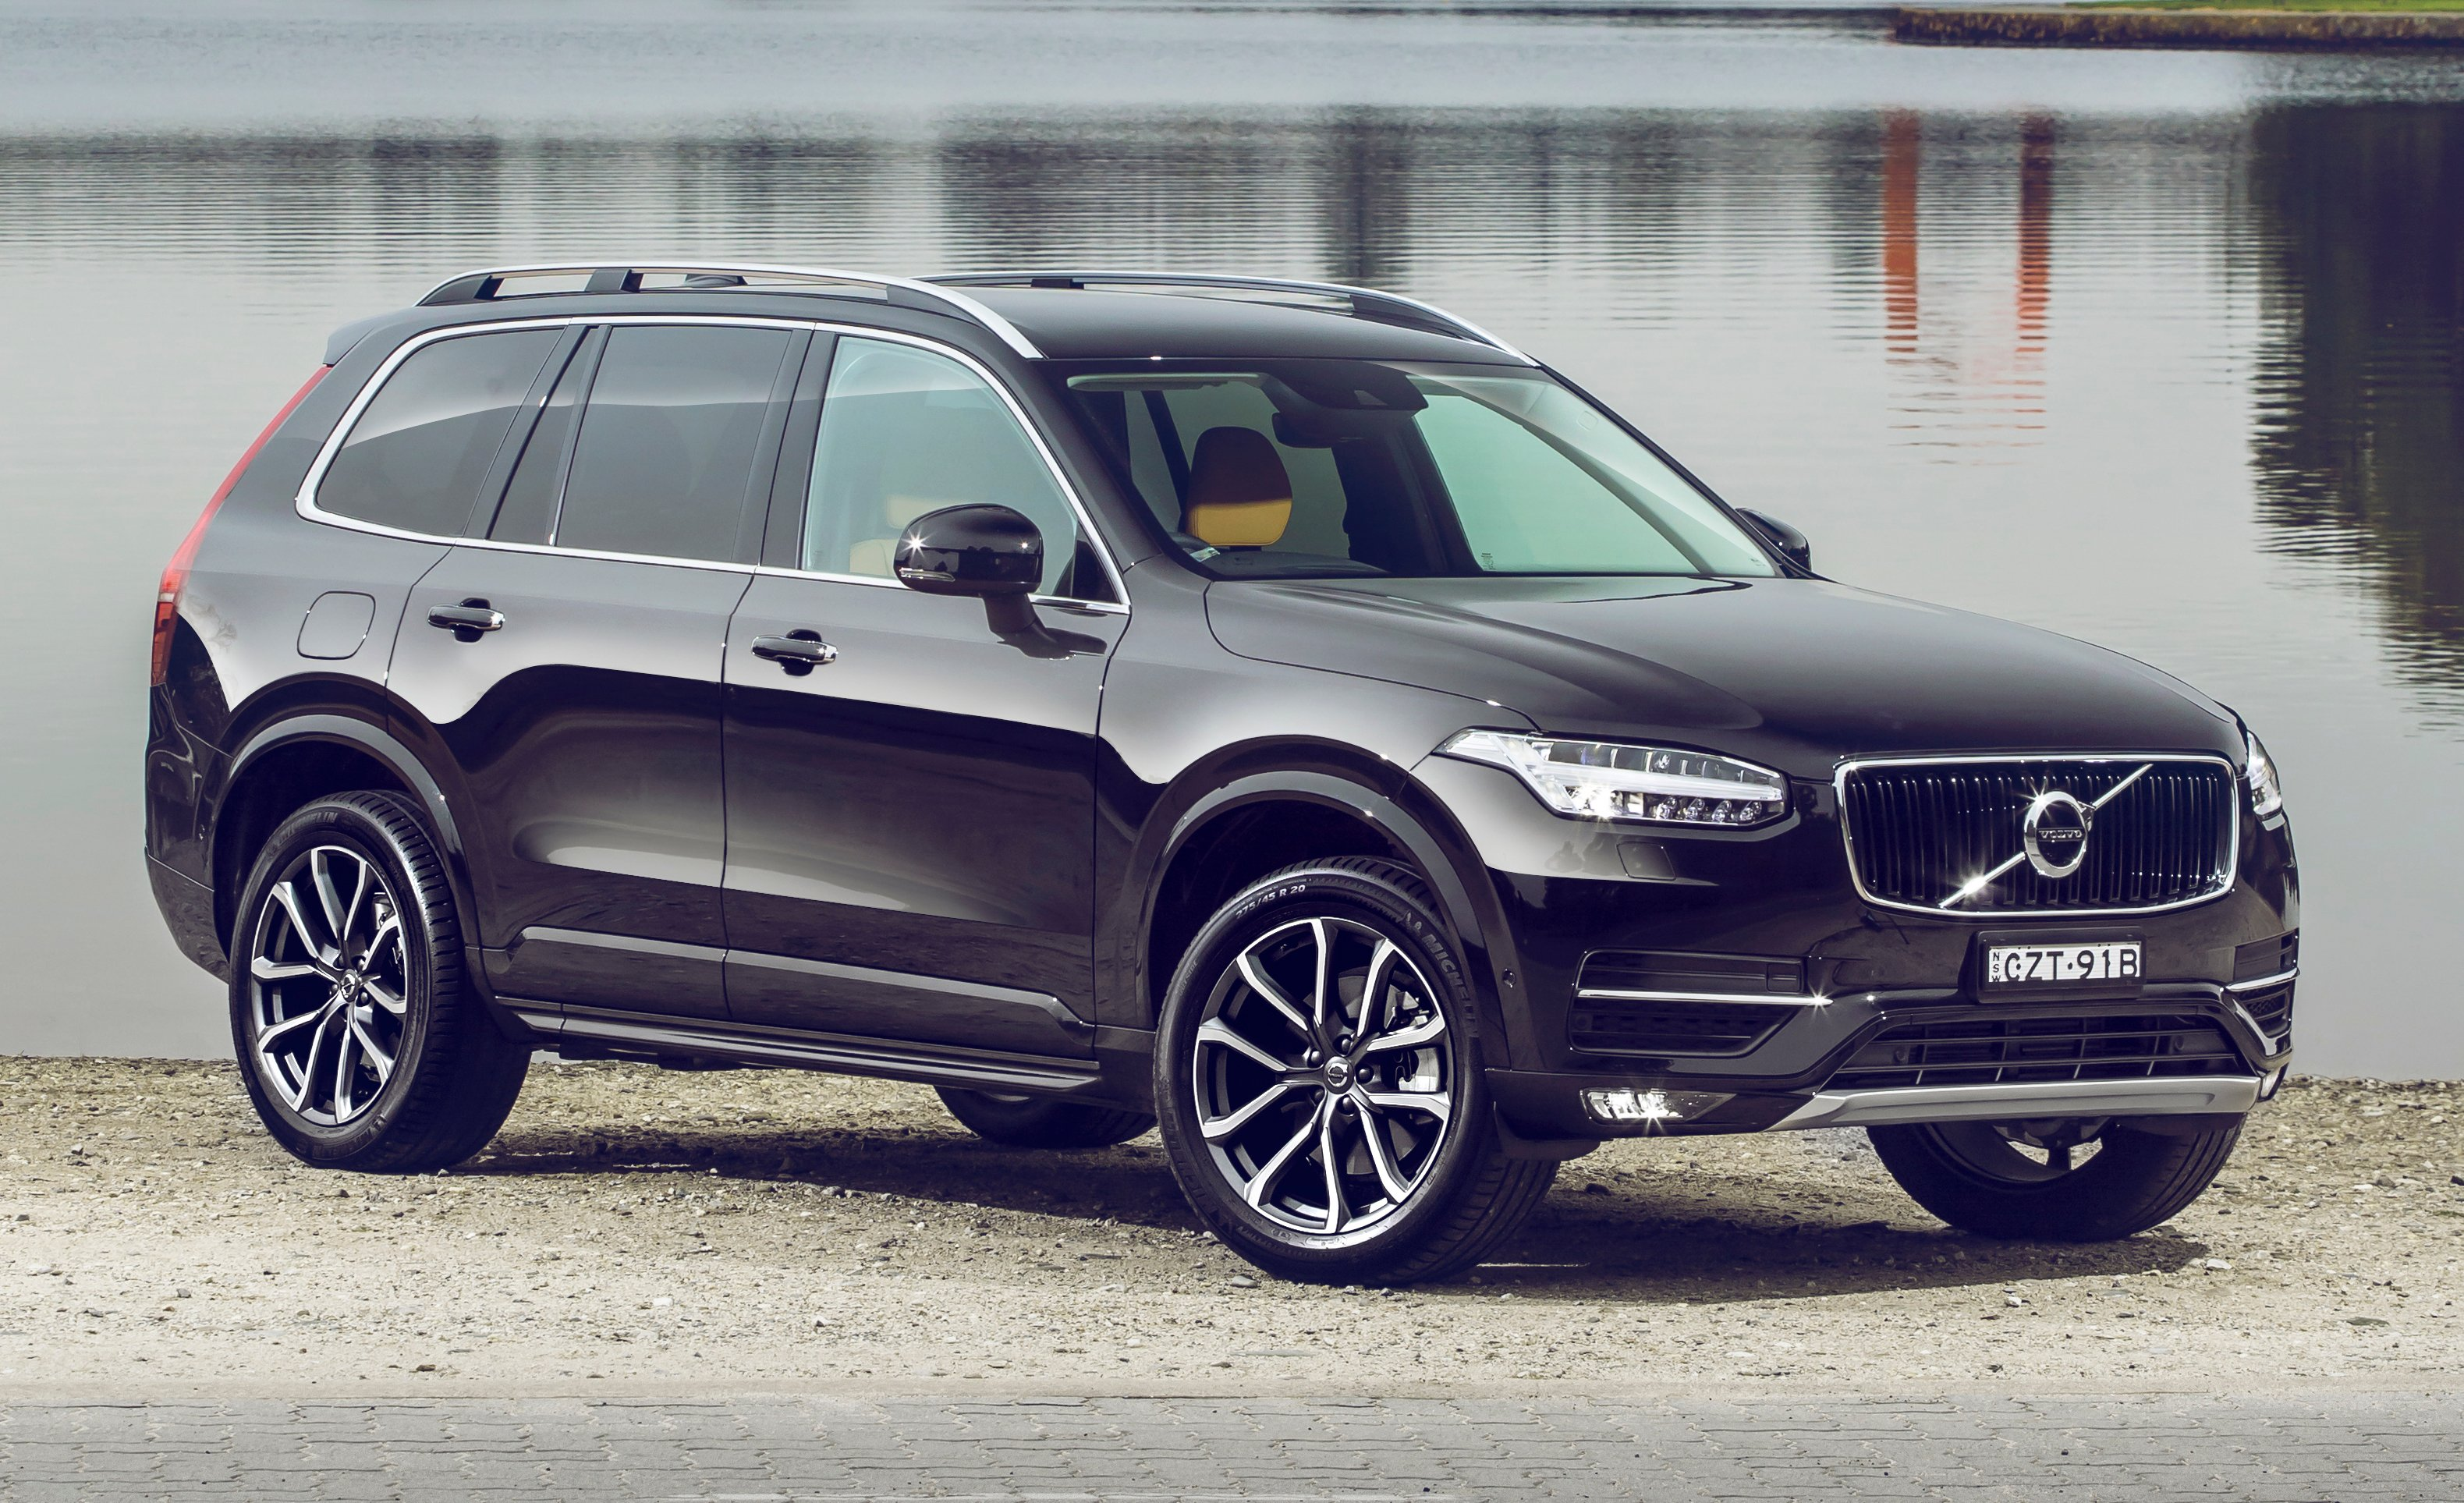 2016 Volvo XC90 Pricing And Specifications